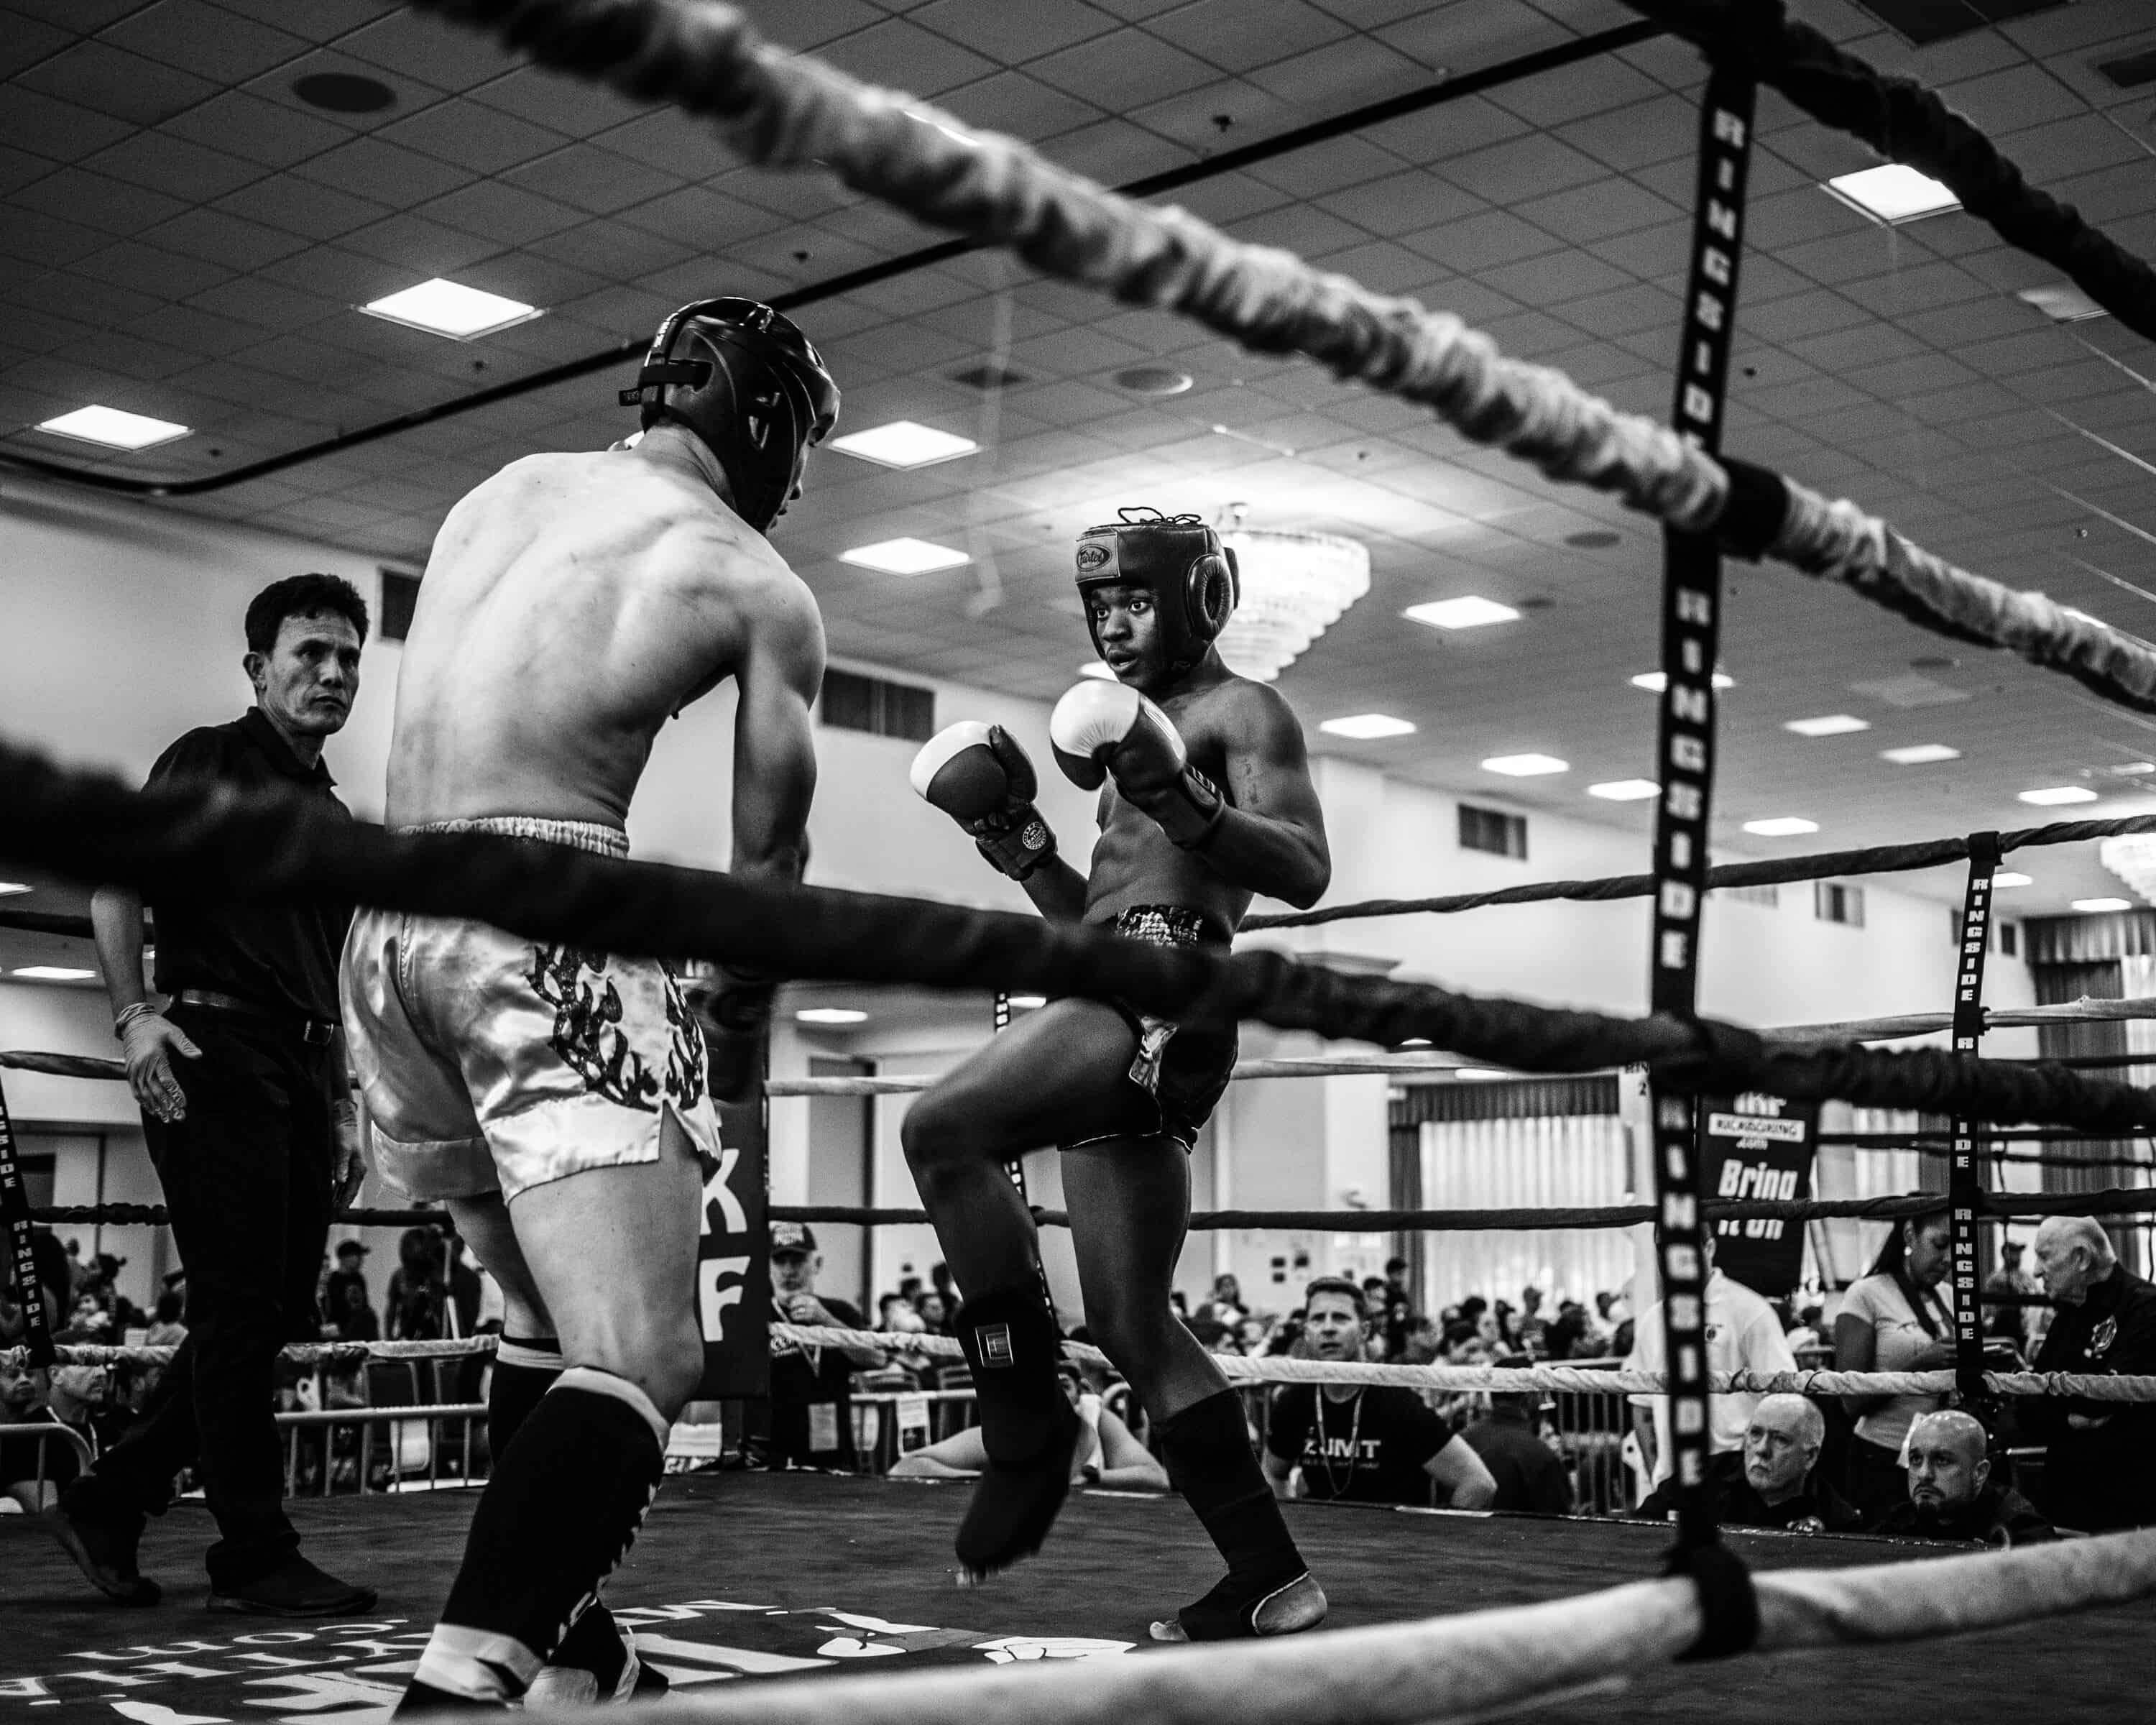 a black and white photo of two men do a boxing sports in a boxing ring